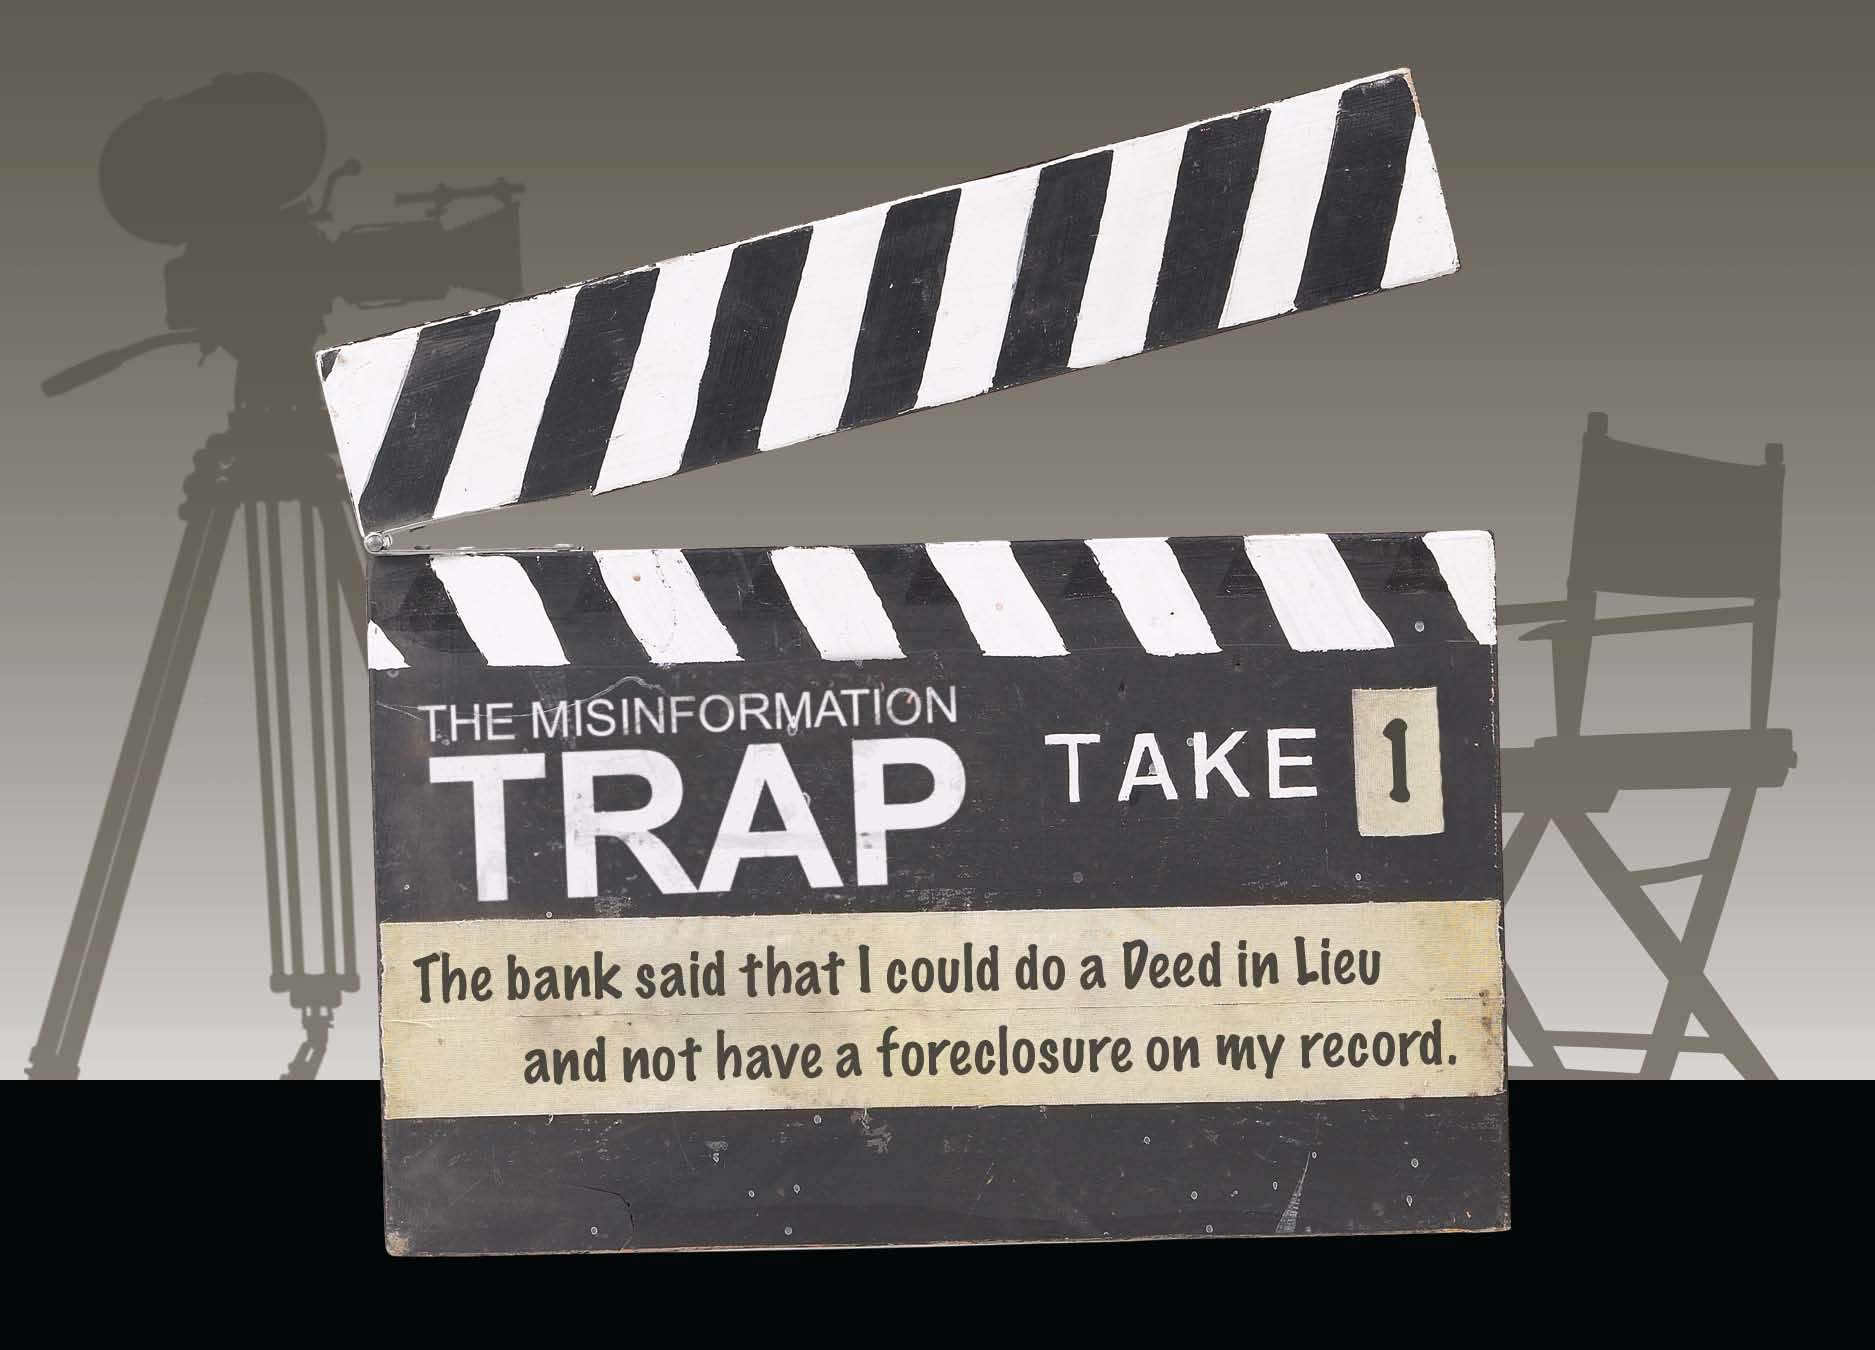 Misinformation Trap - Take 1